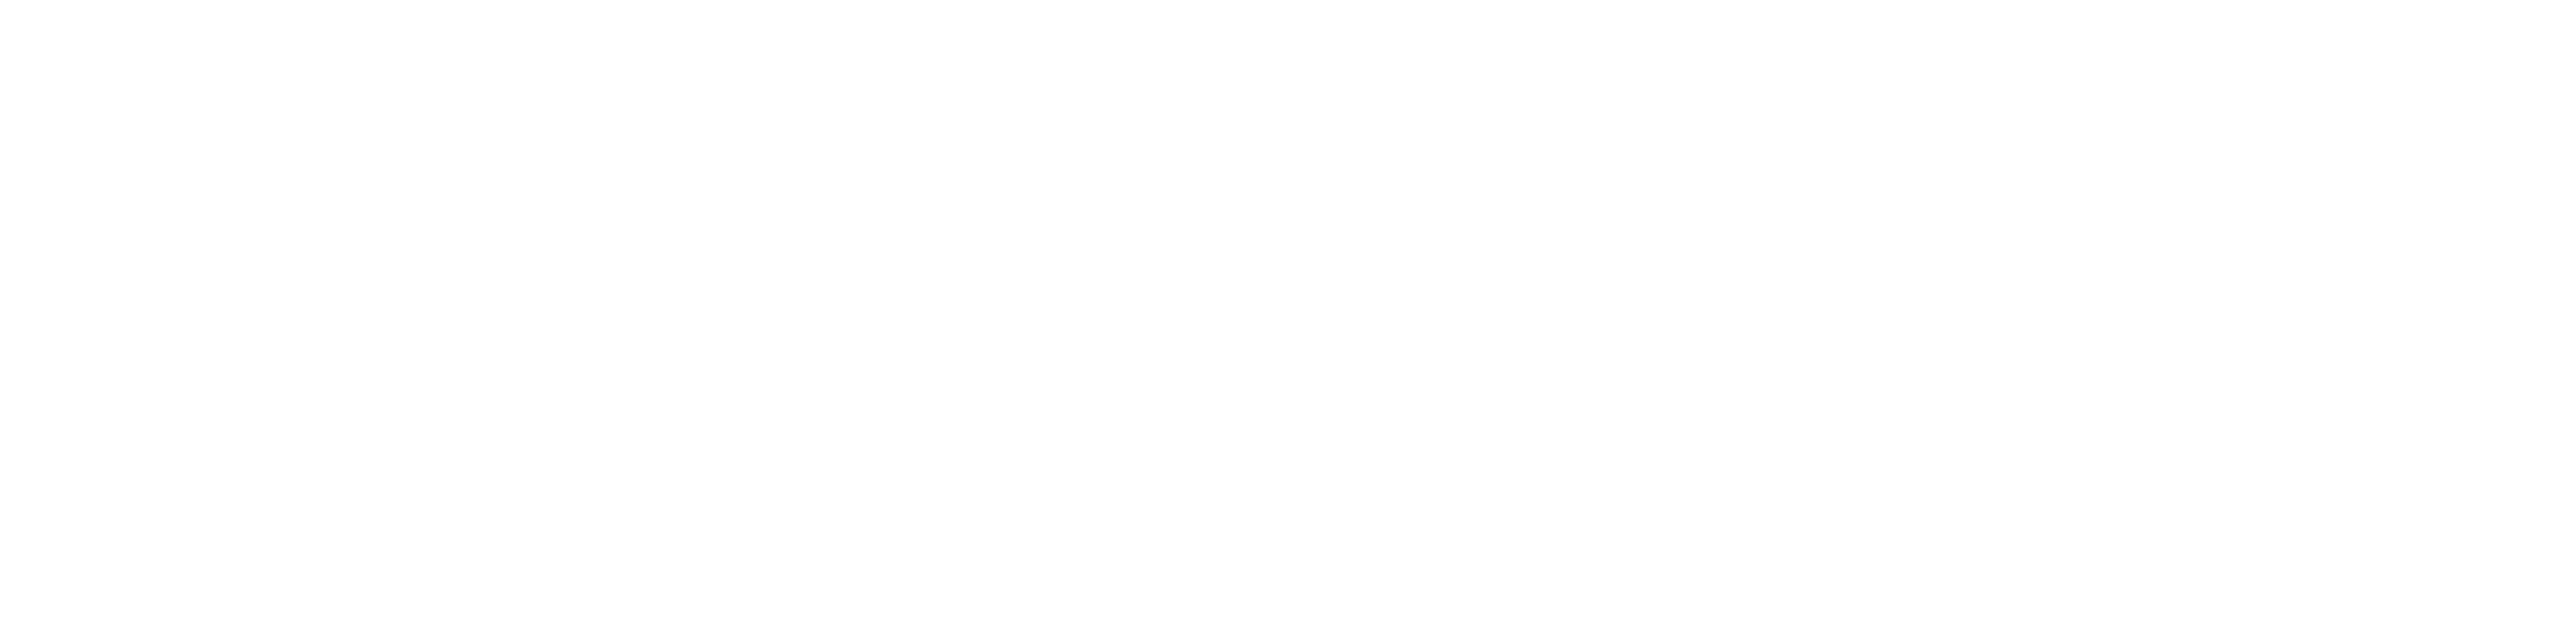 News That Moves Logo